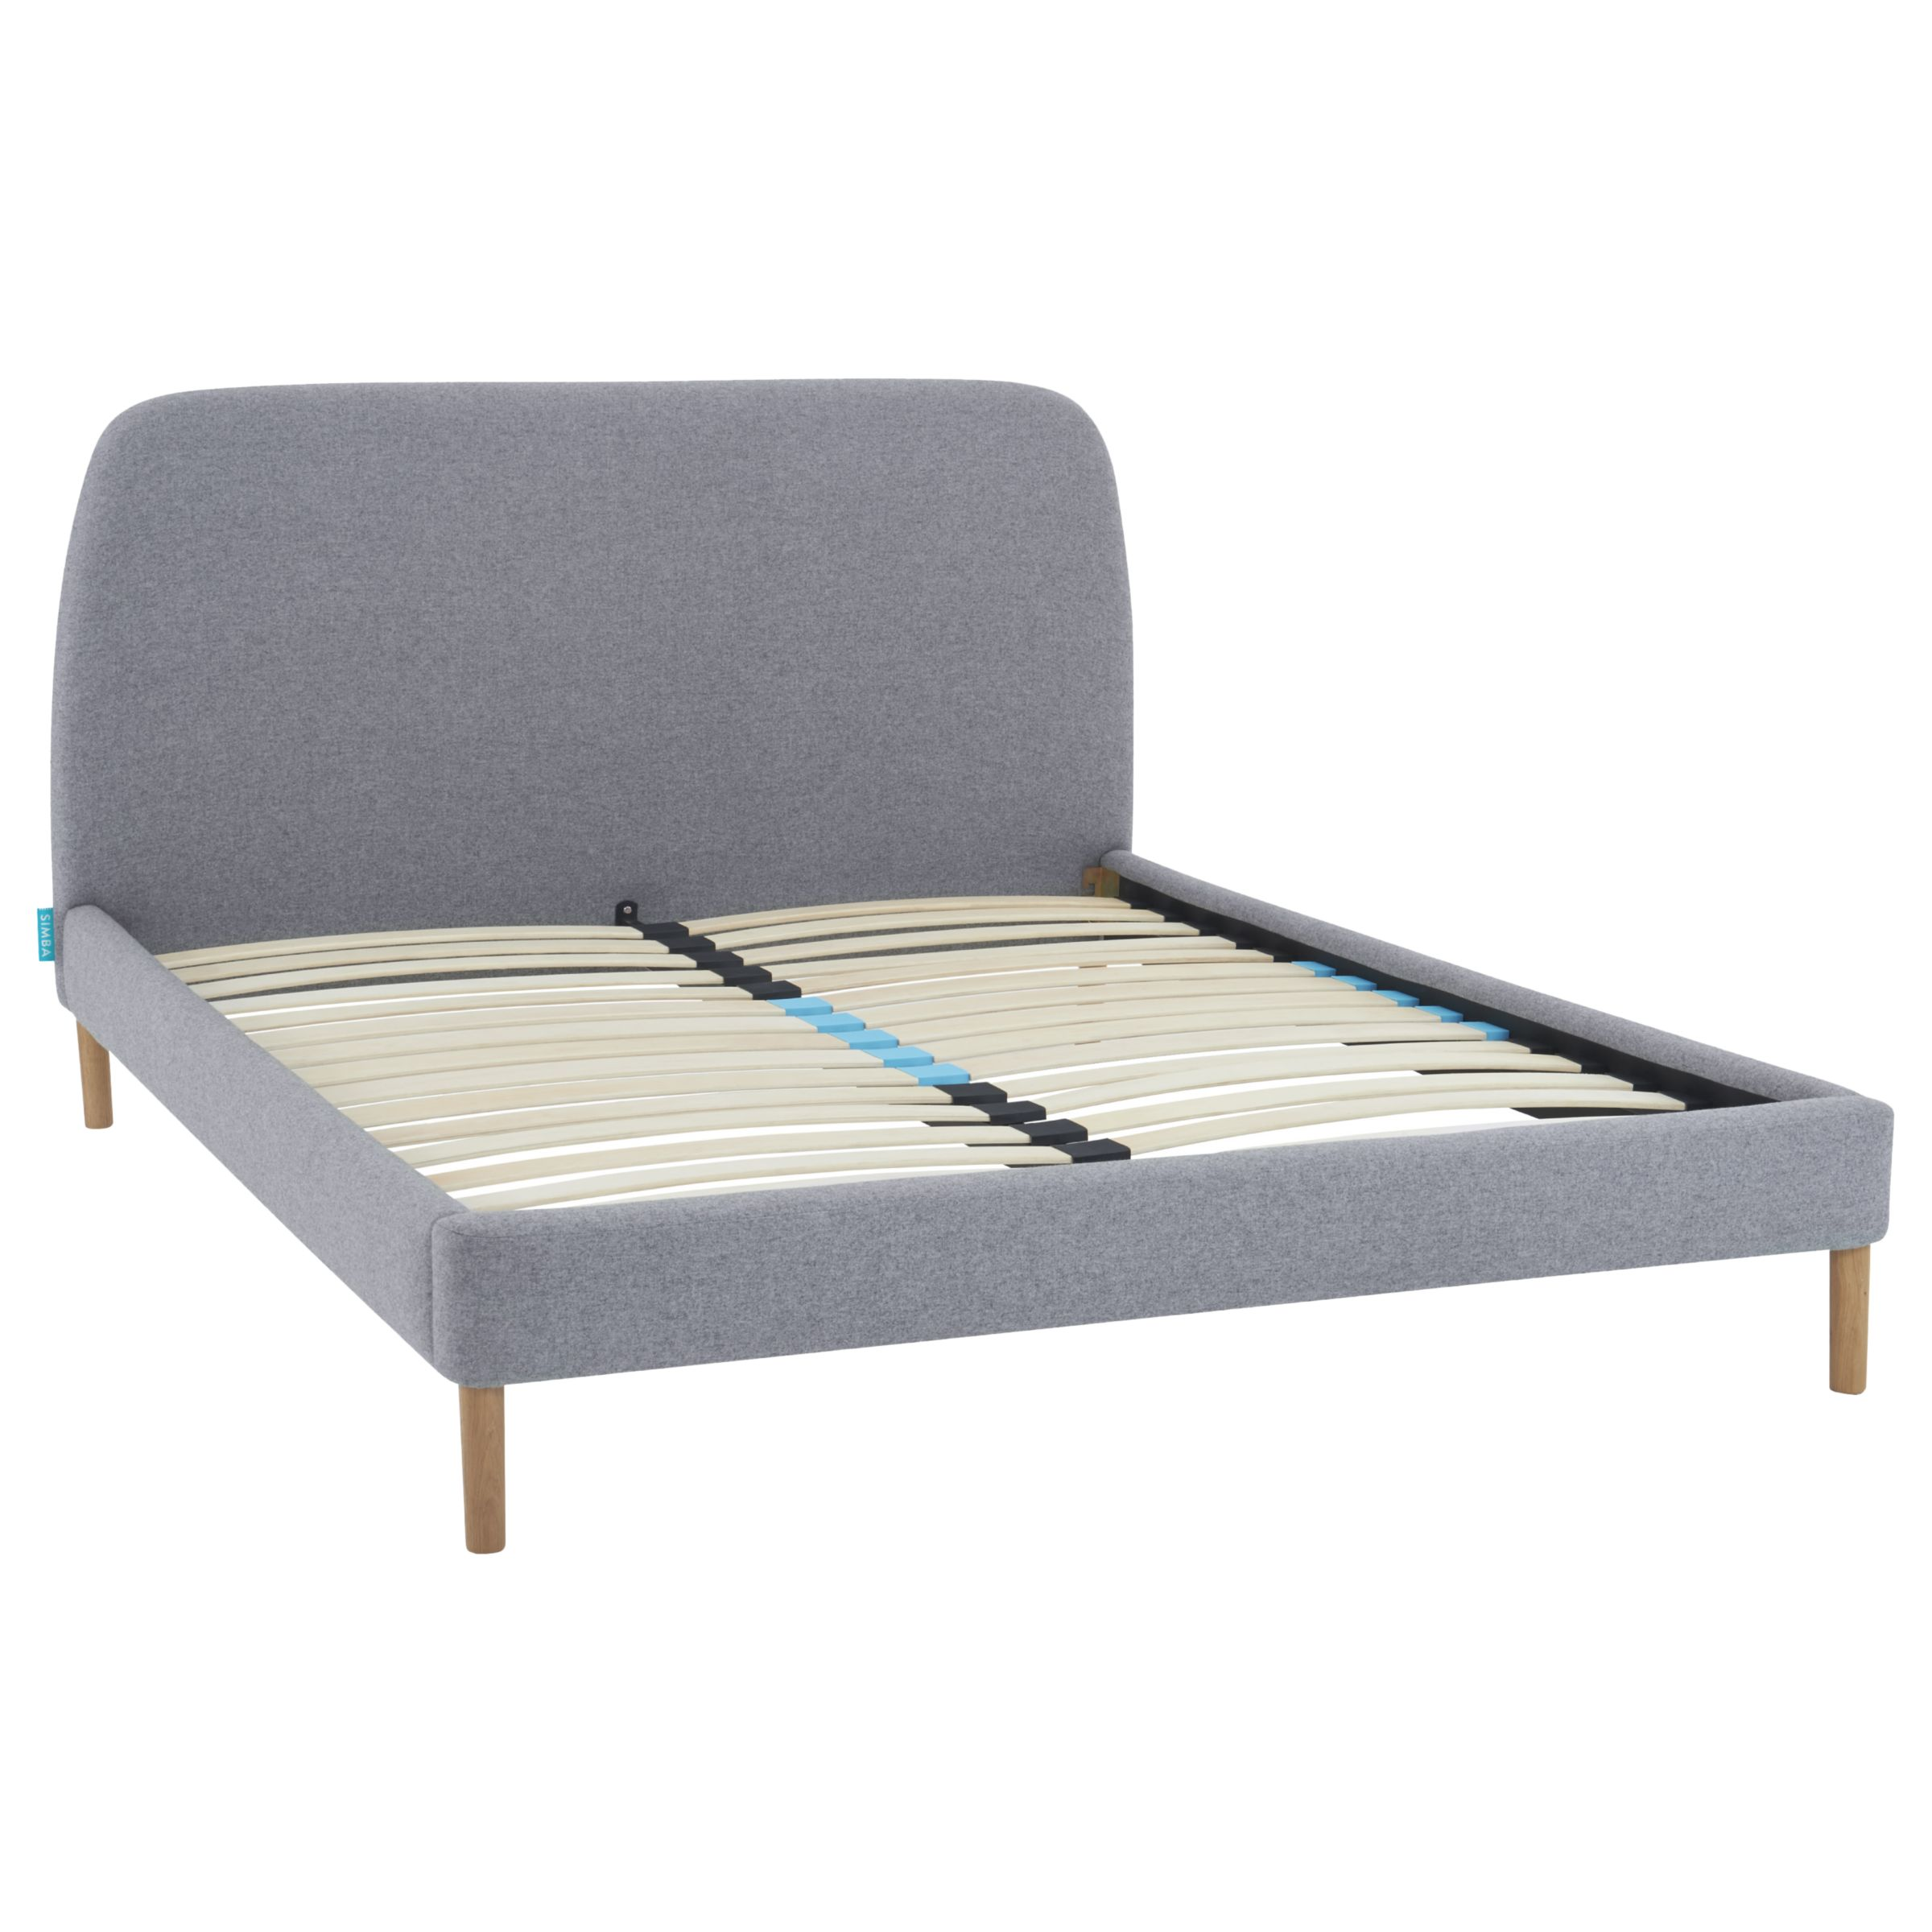 Picture of: Simba Hybrid Upholstered Bed Frame With Headboard King Size Grey At John Lewis Partners